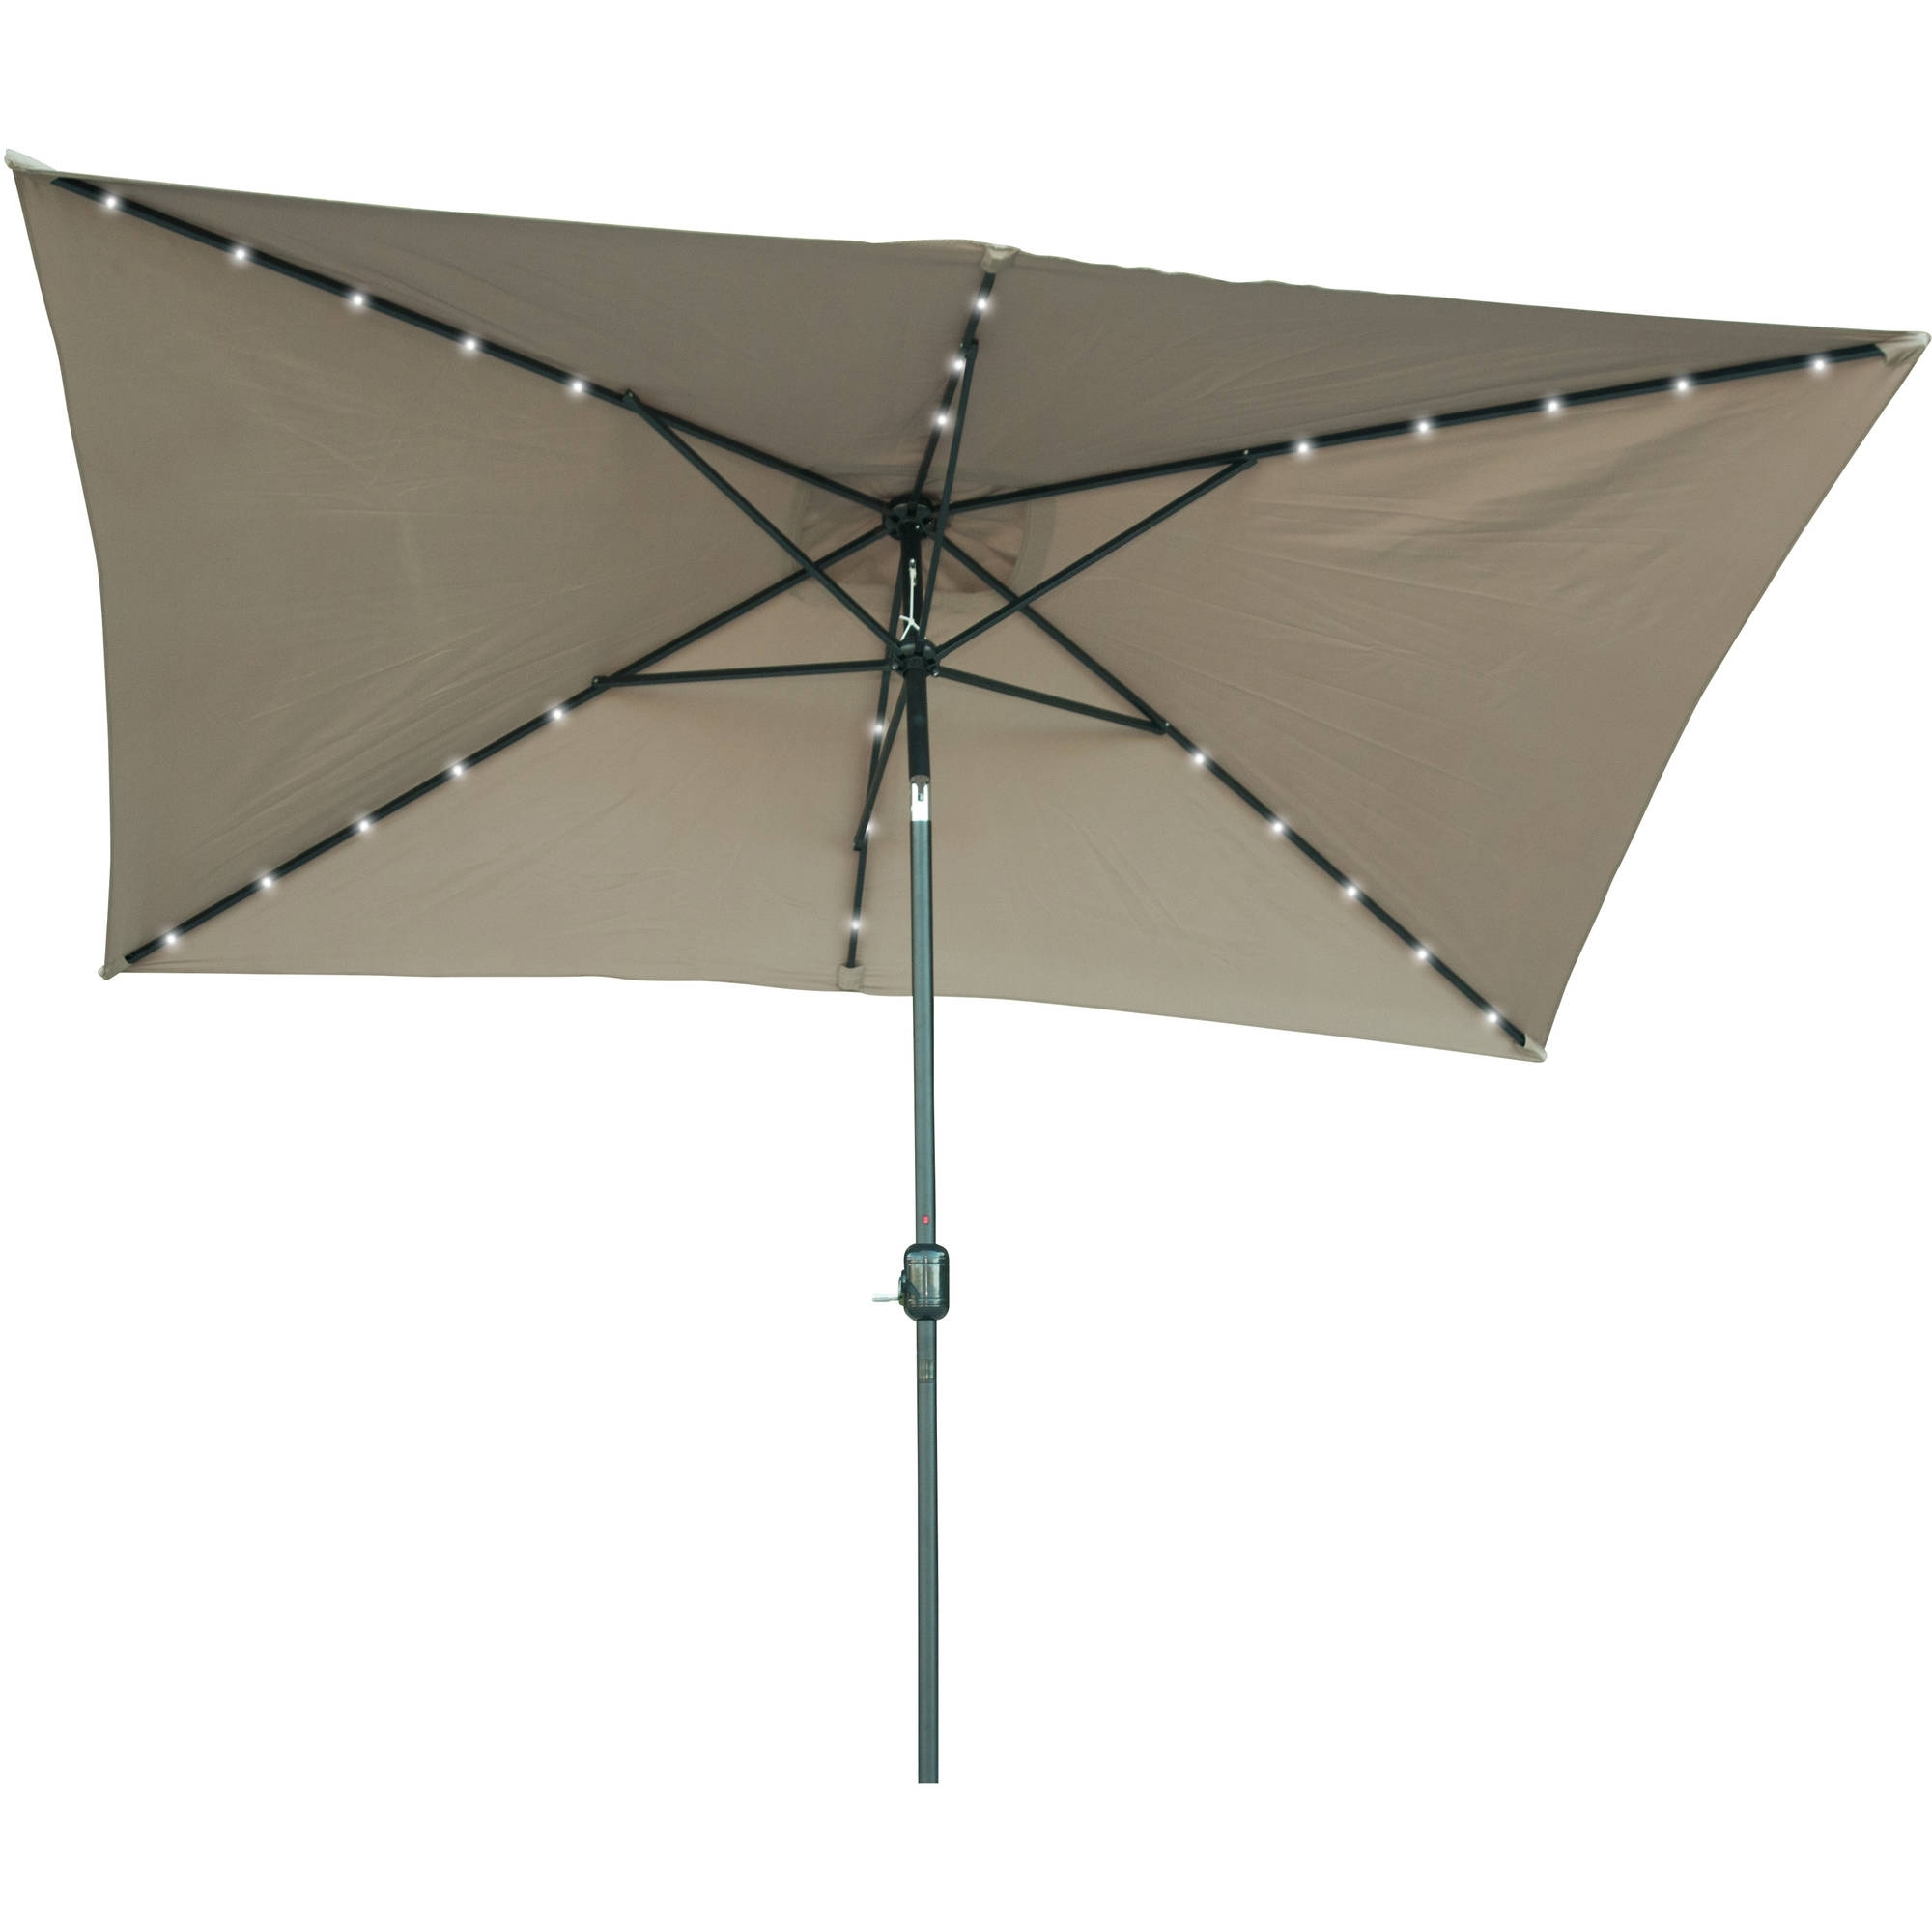 Well Liked Patio Umbrellas With Solar Led Lights Inside Rectangular Solar Powered Led Lighted Patio Umbrella – 10' X  (View 17 of 20)